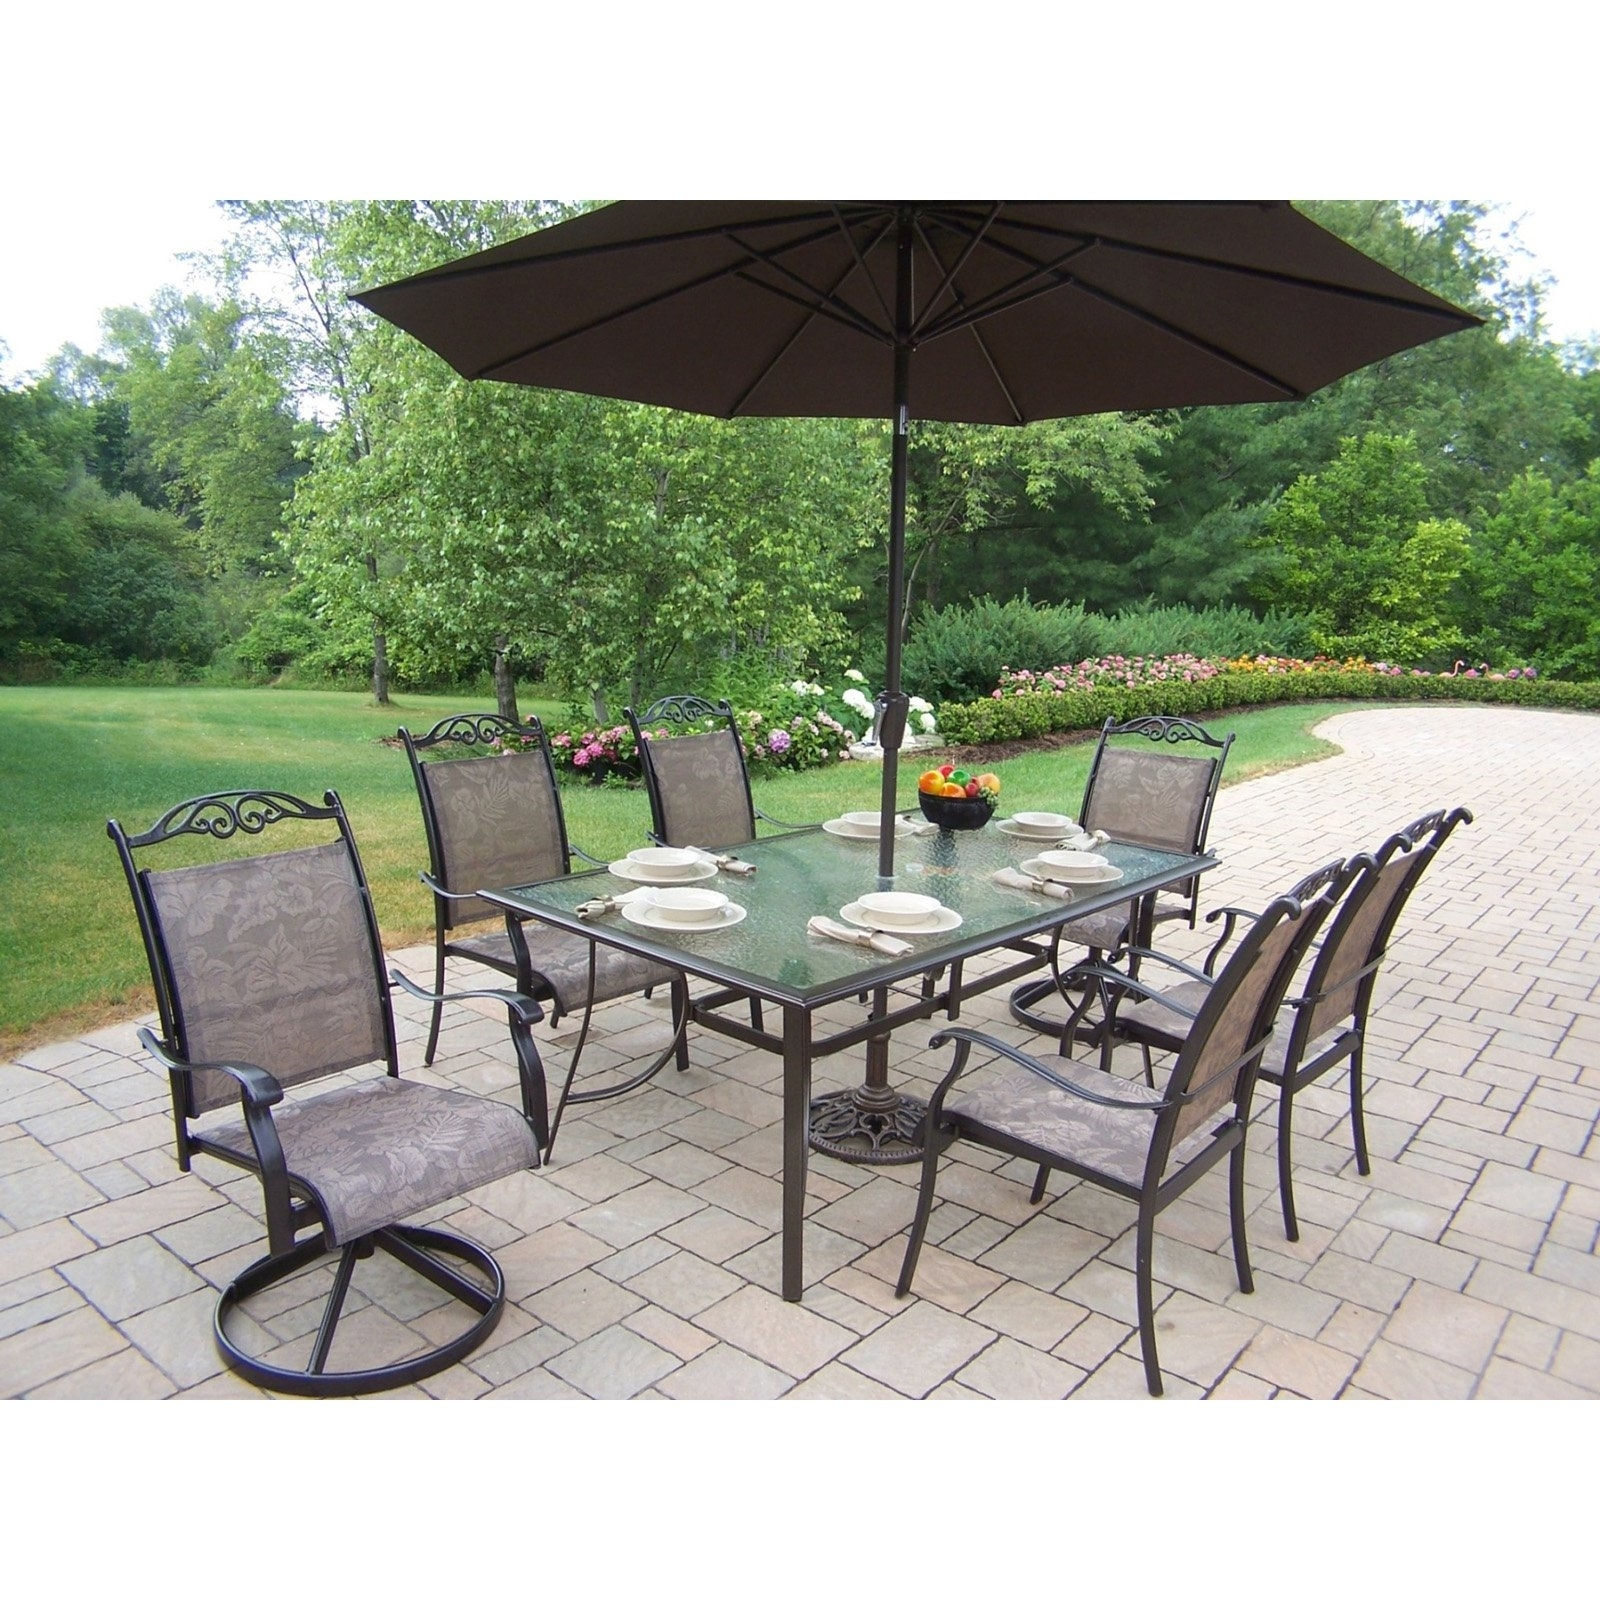 Well Liked Ultimate Patio Table Umbrella About Small Patio Table With Umbrella Within Patio Tables With Umbrella Hole (View 8 of 20)